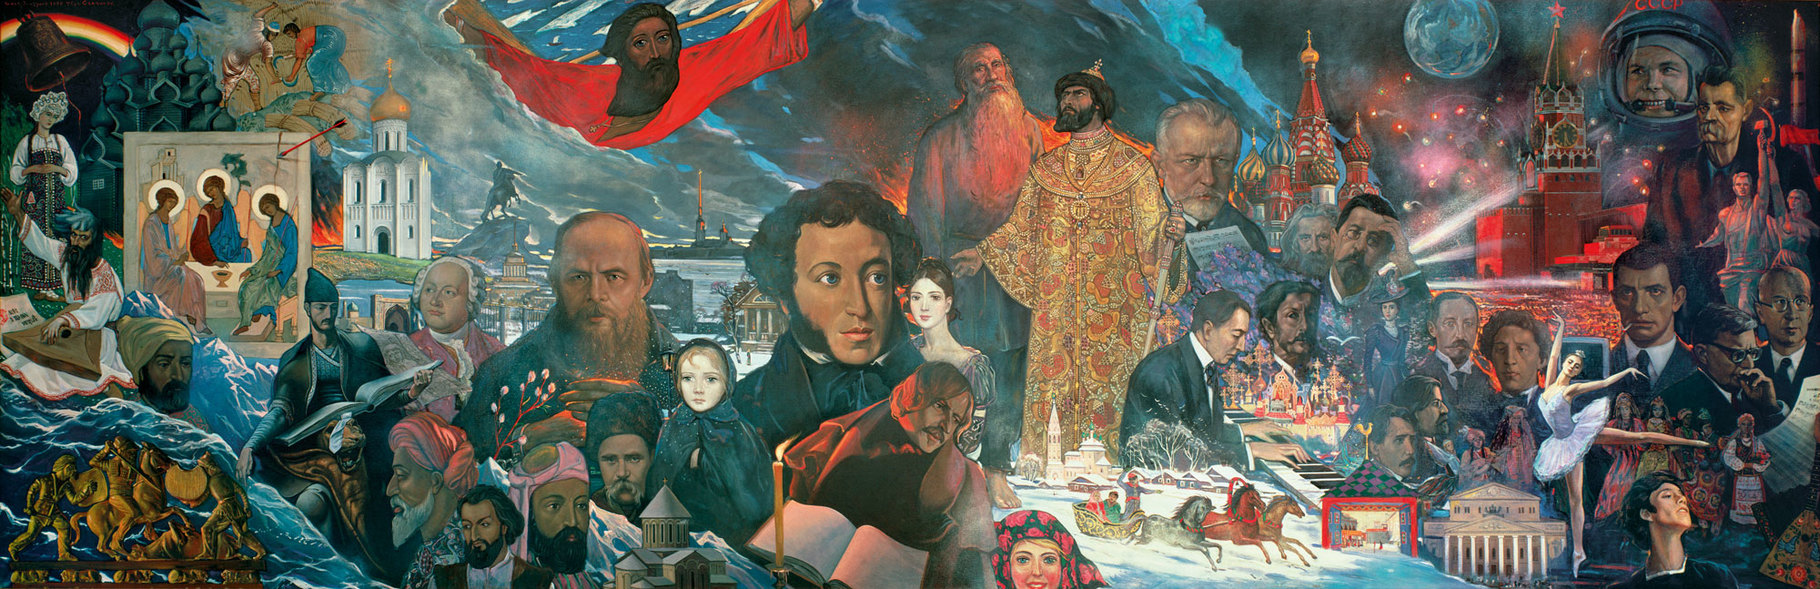 The Contribution of the People of the USSR to World Culture and Civilization